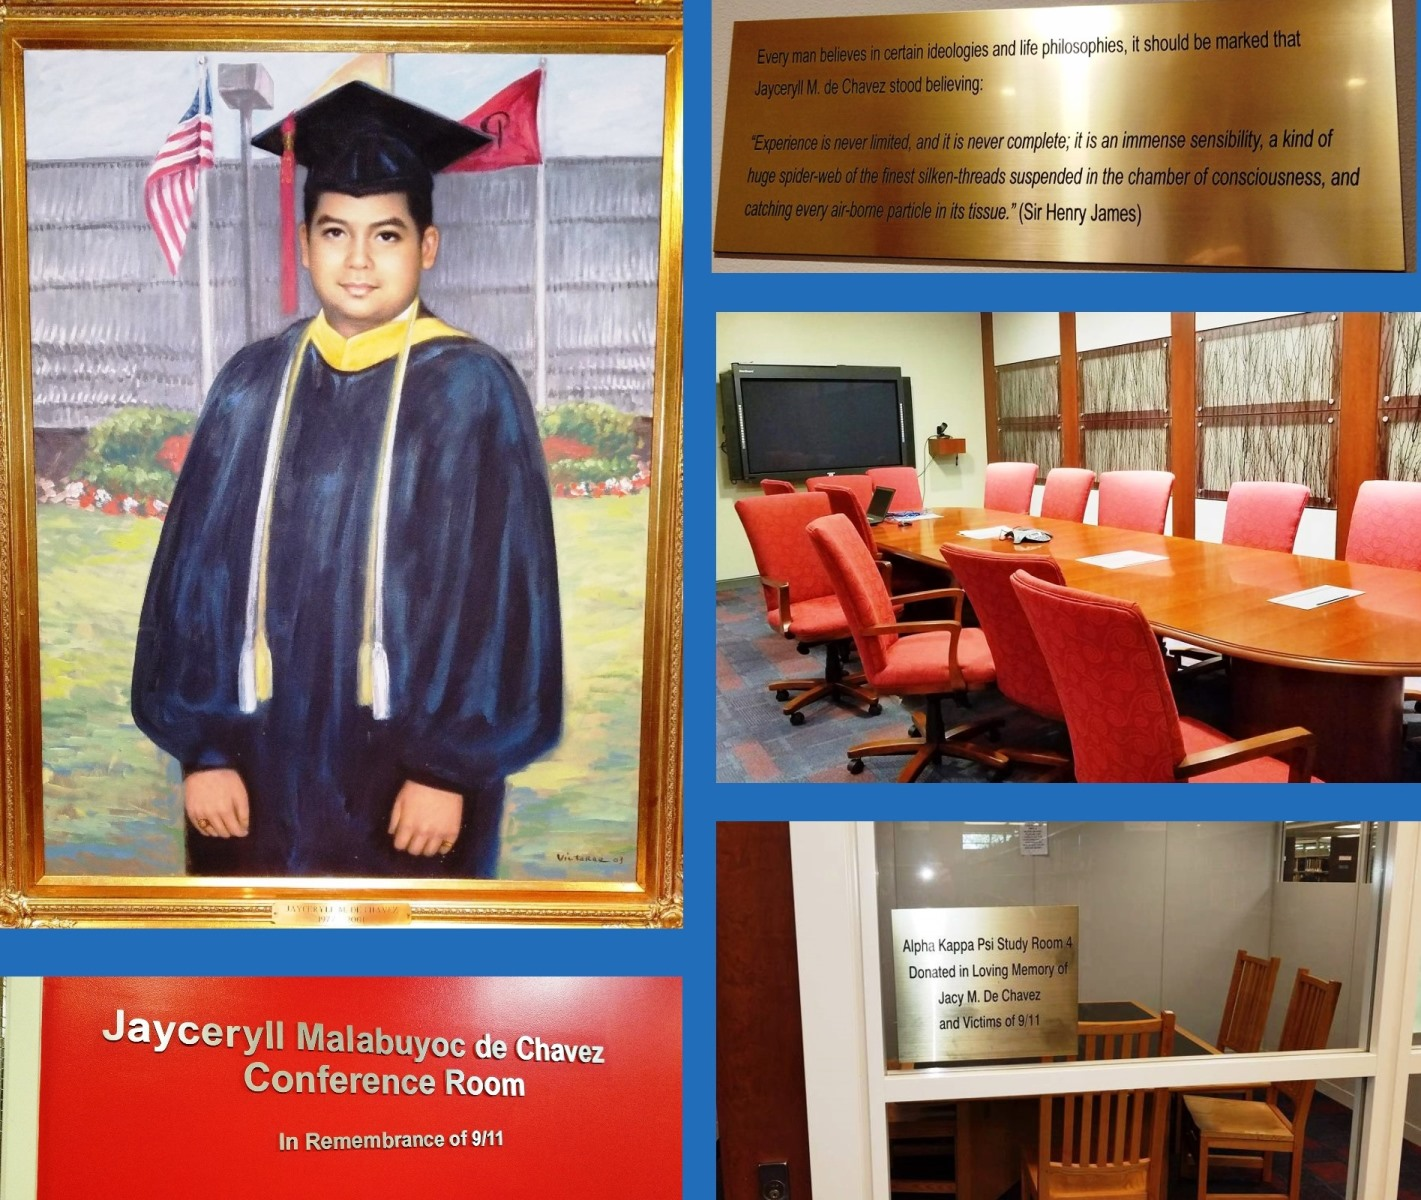 Jaceryll Malabuyoc de Chavez - Tributes at Carr Library